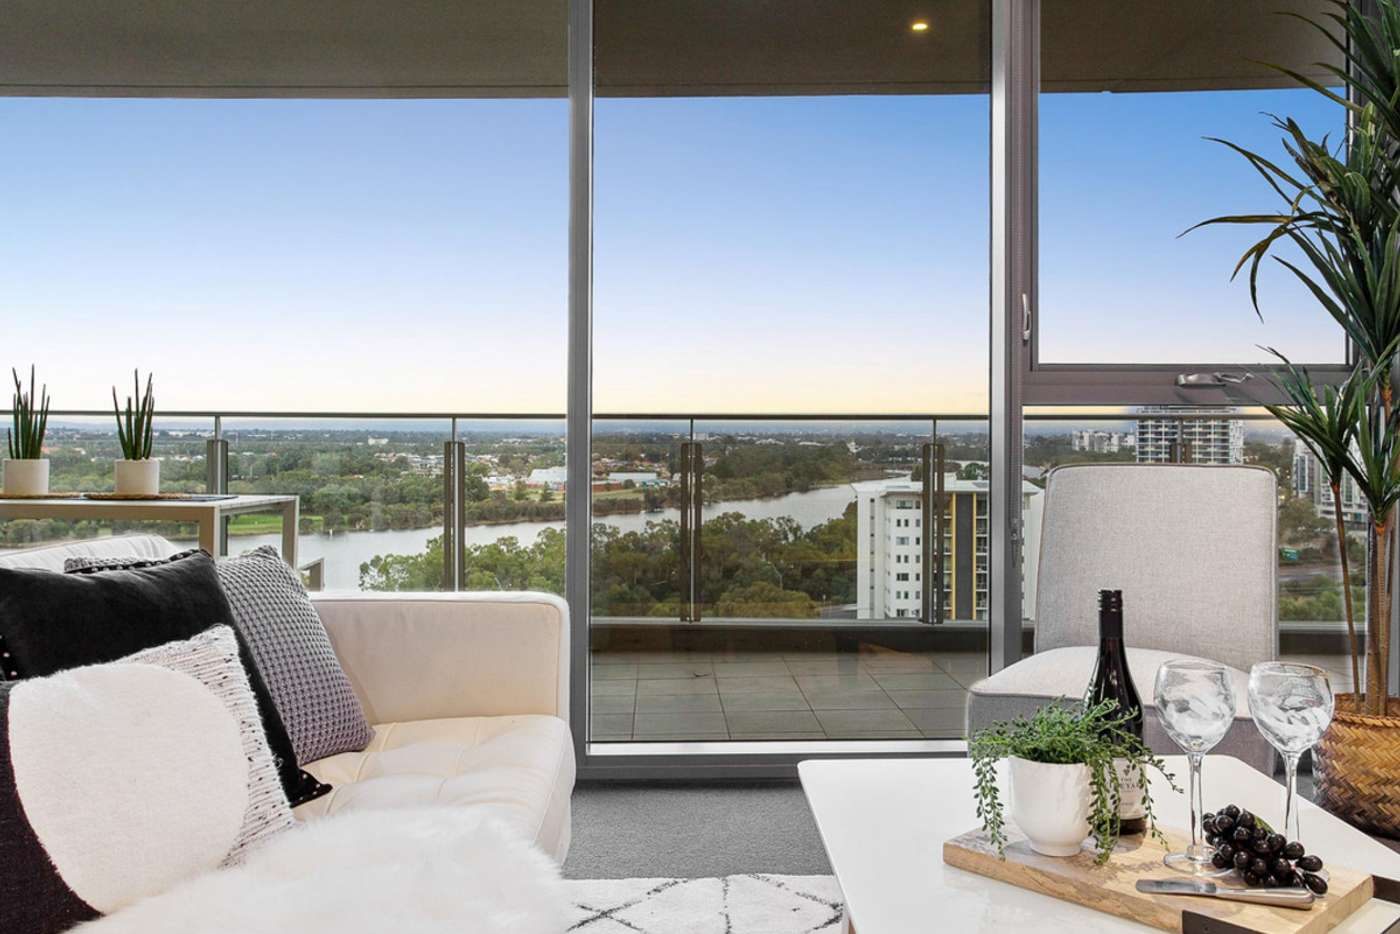 Main view of Homely apartment listing, 1307/96 Bow River Crescent, Burswood WA 6100